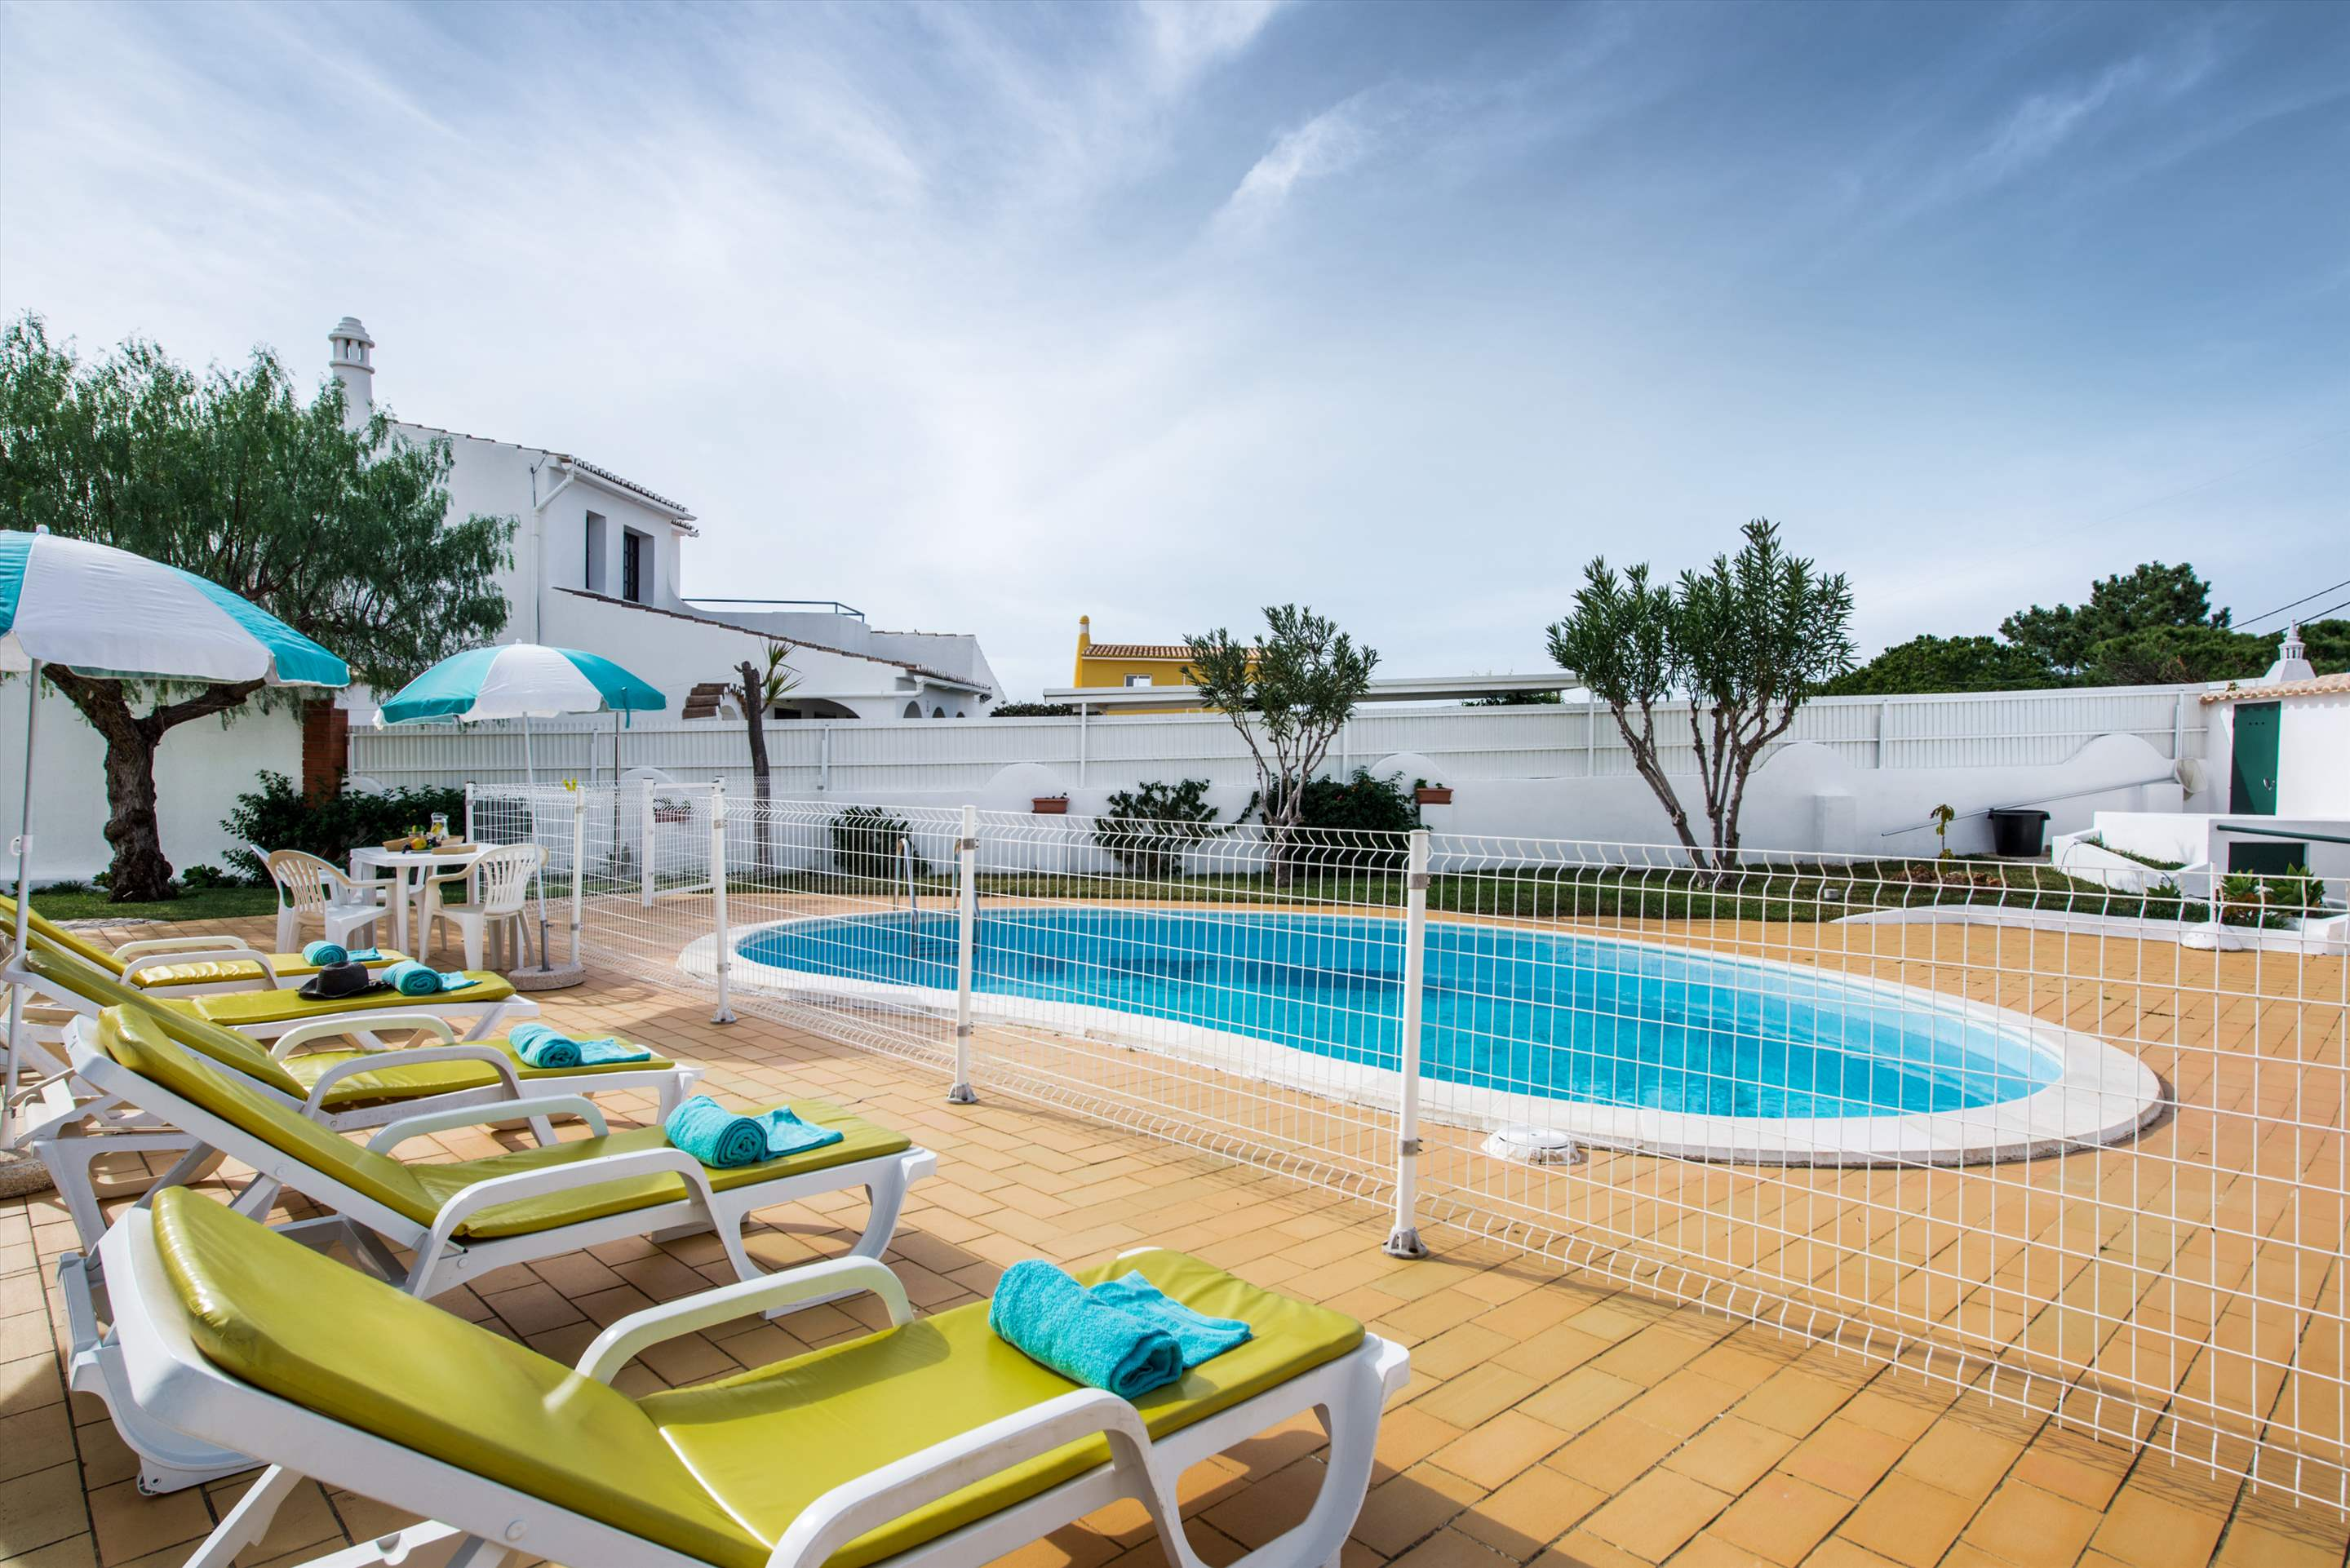 Casa Isabel, 5-6 persons rate, 3 bedroom villa in Gale, Vale da Parra and Guia, Algarve Photo #9